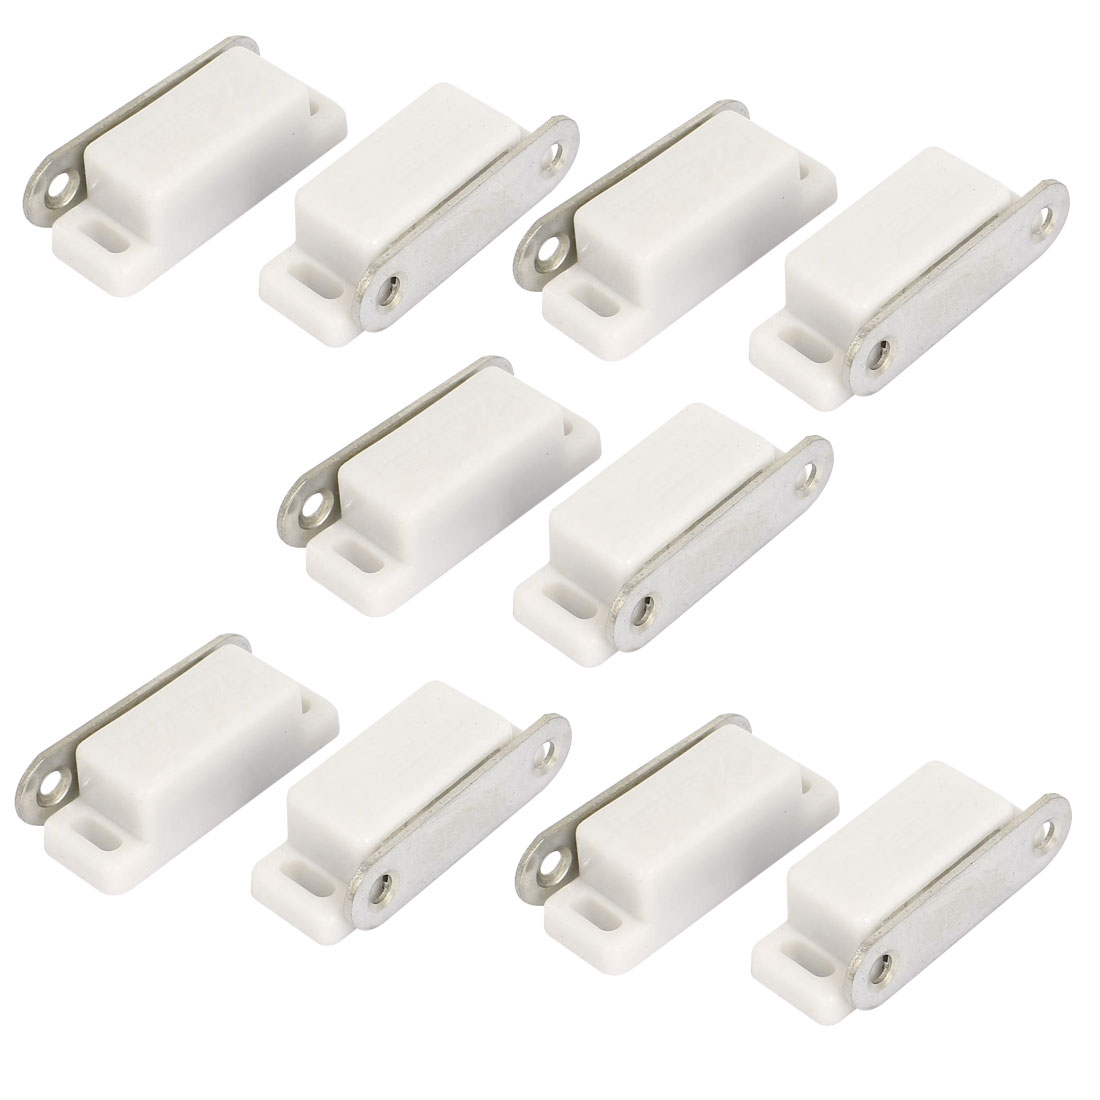 10pcs Cabinet Hardware Cupboard Door Stopper Magnetic Catch Latch Stop